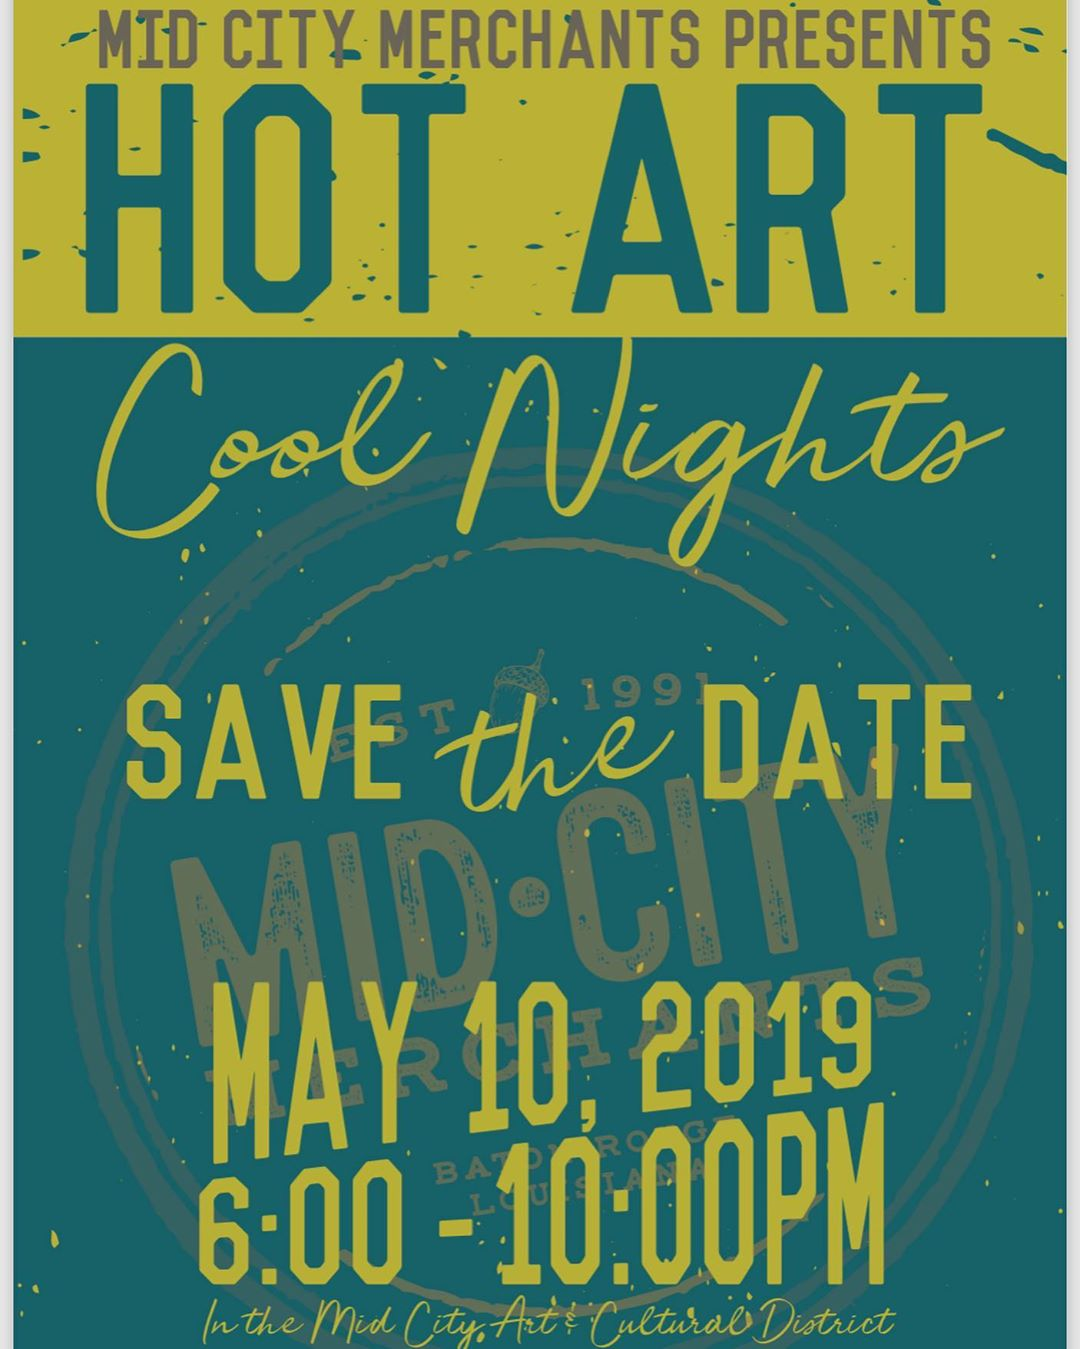 Get your rain boots on and come on out tonight for some fun, food, art…